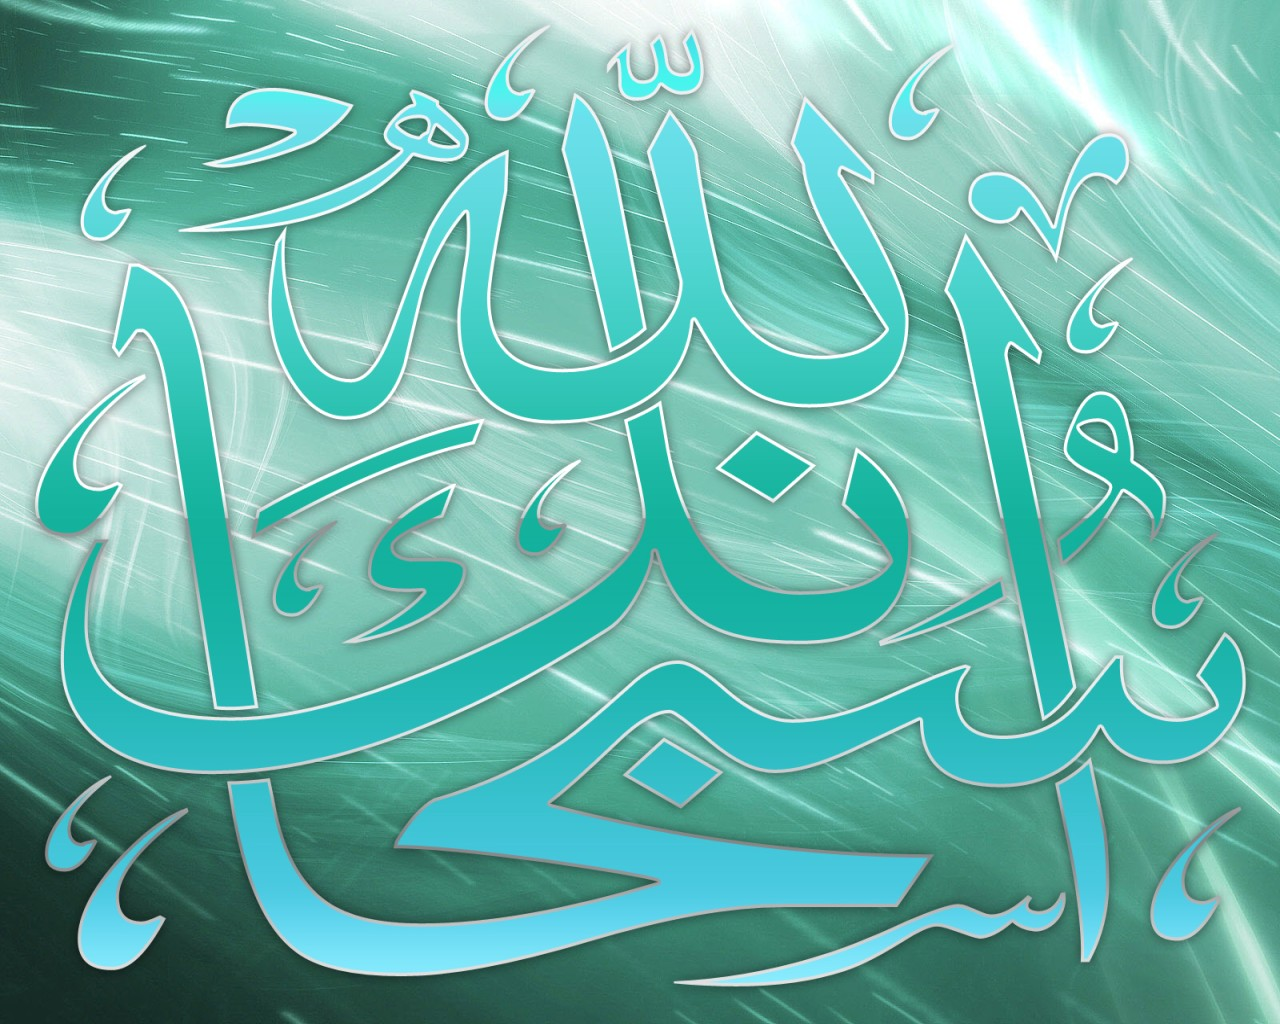 Subhan allah wallpapers 2013 islamic wallpapers kaaba Allah calligraphy wallpaper